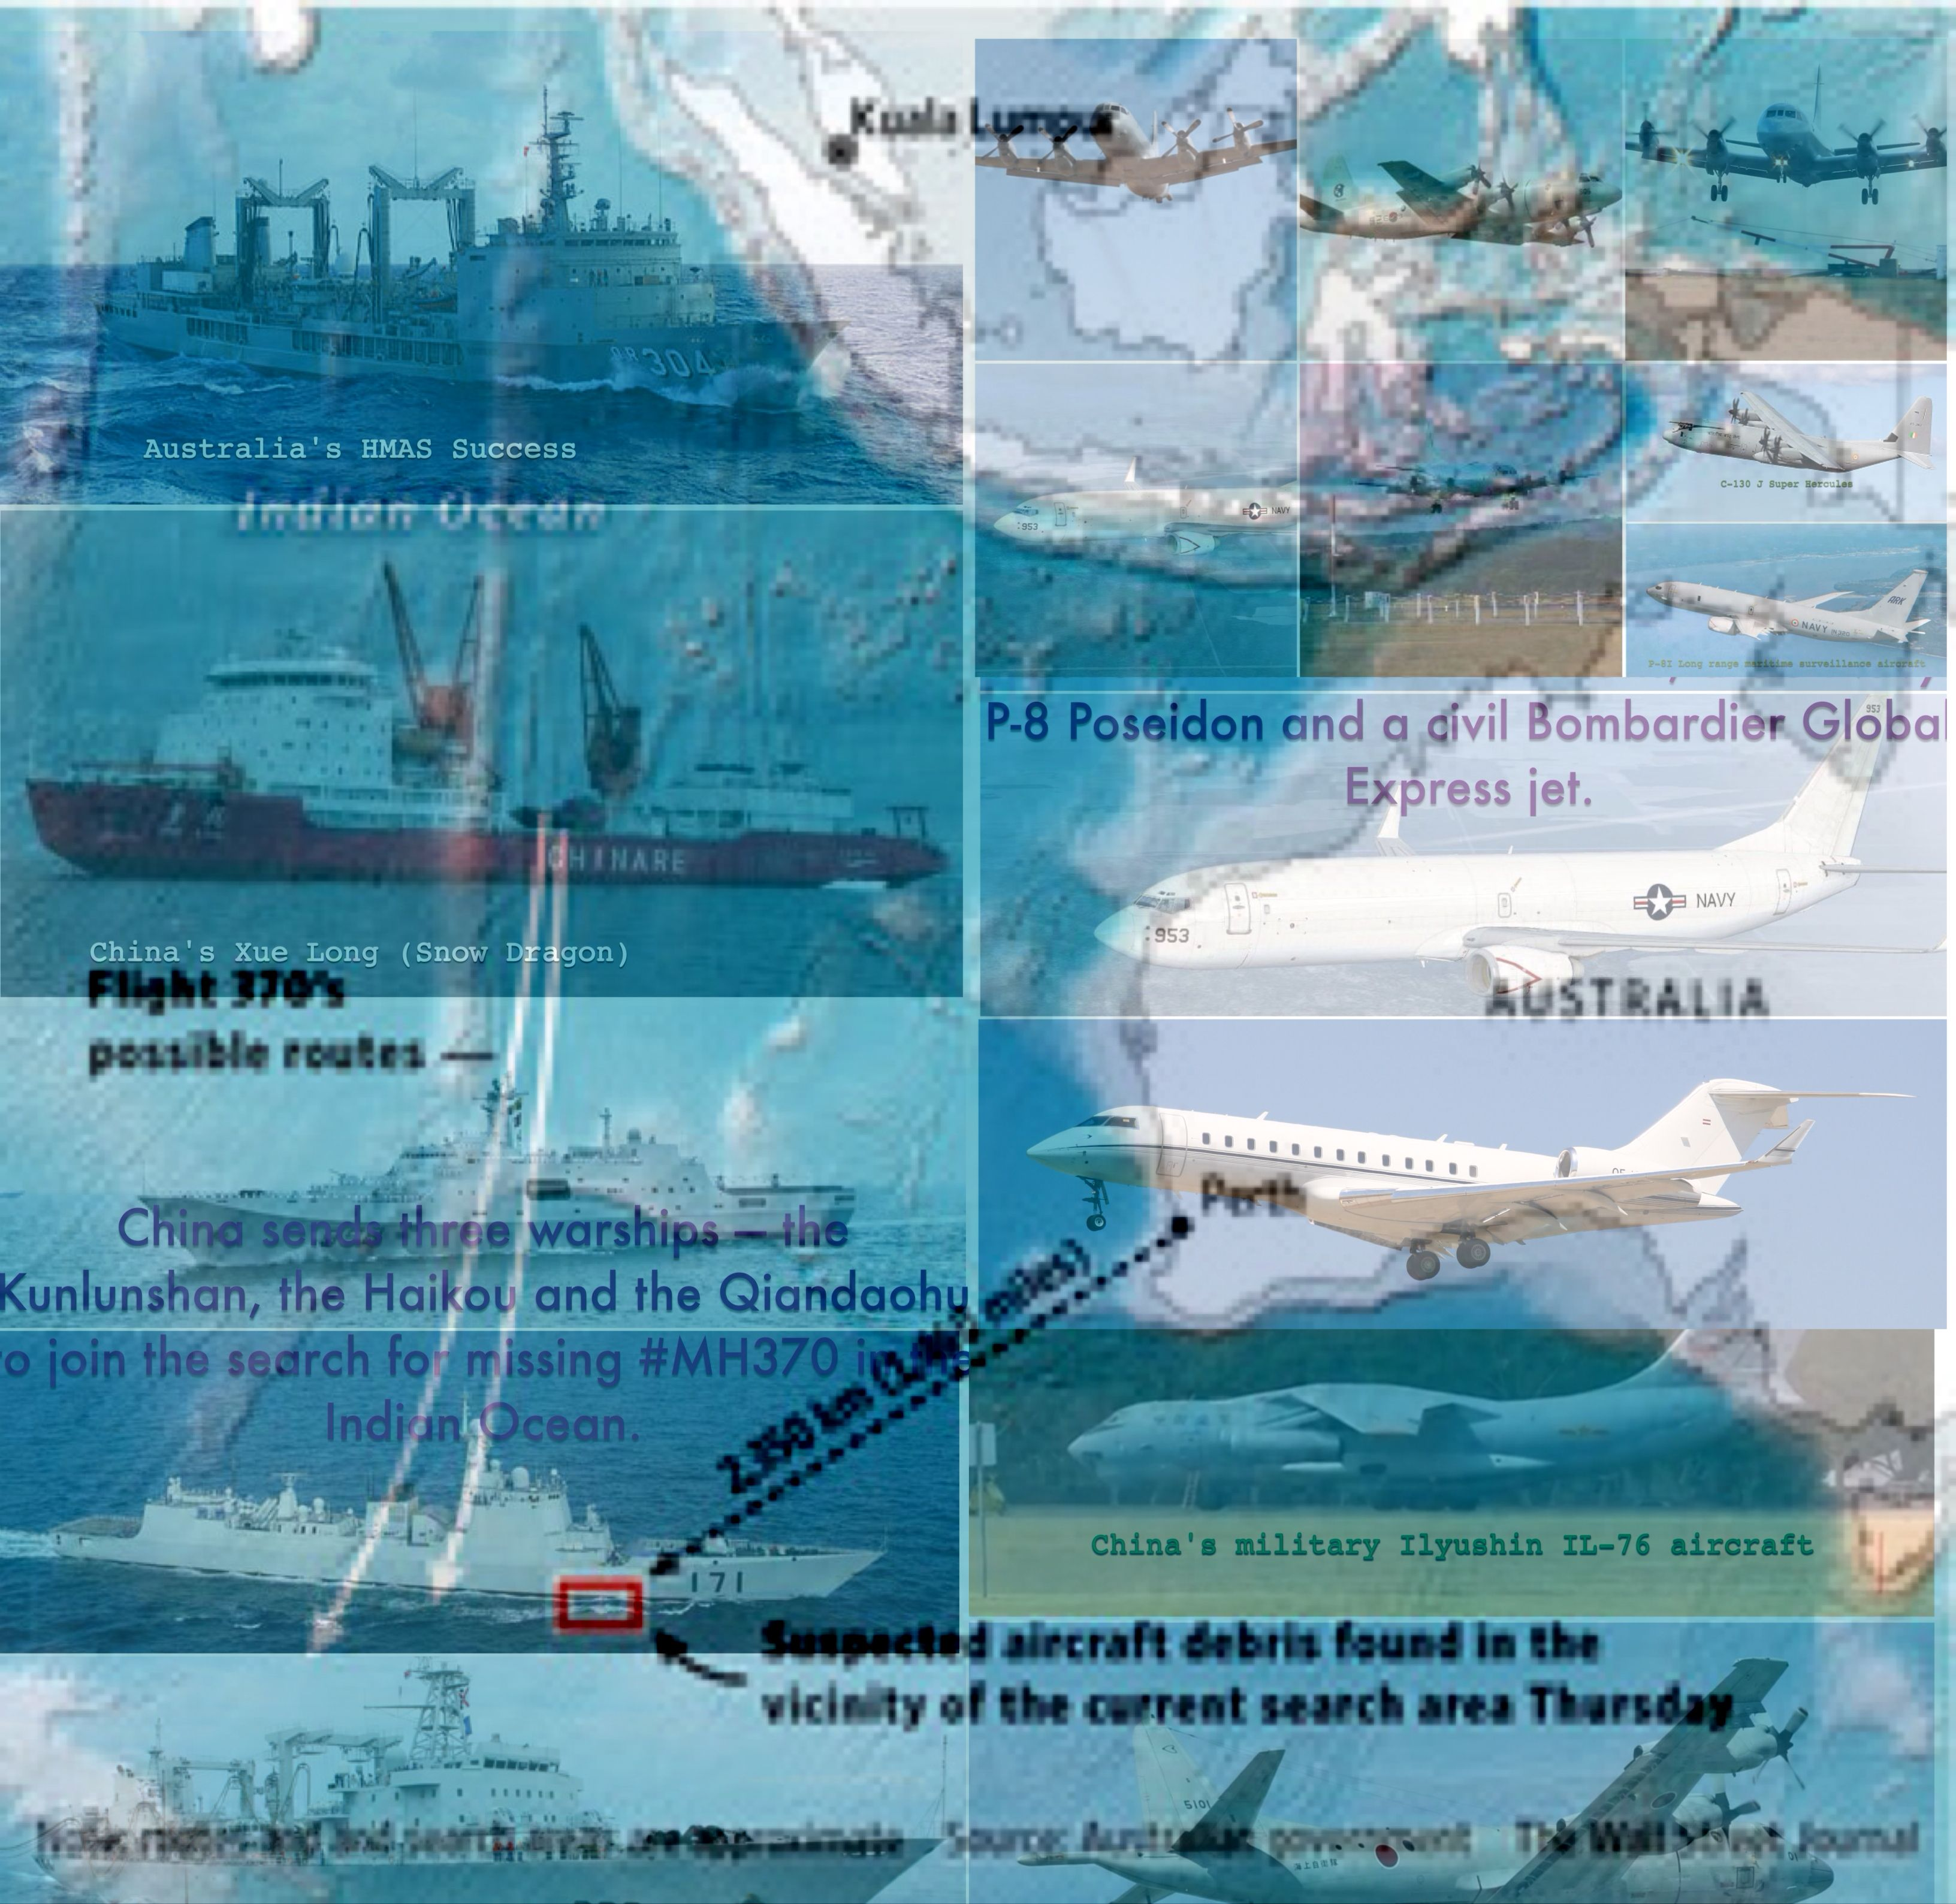 Planes, ships resume search on March 28 for missing MH370